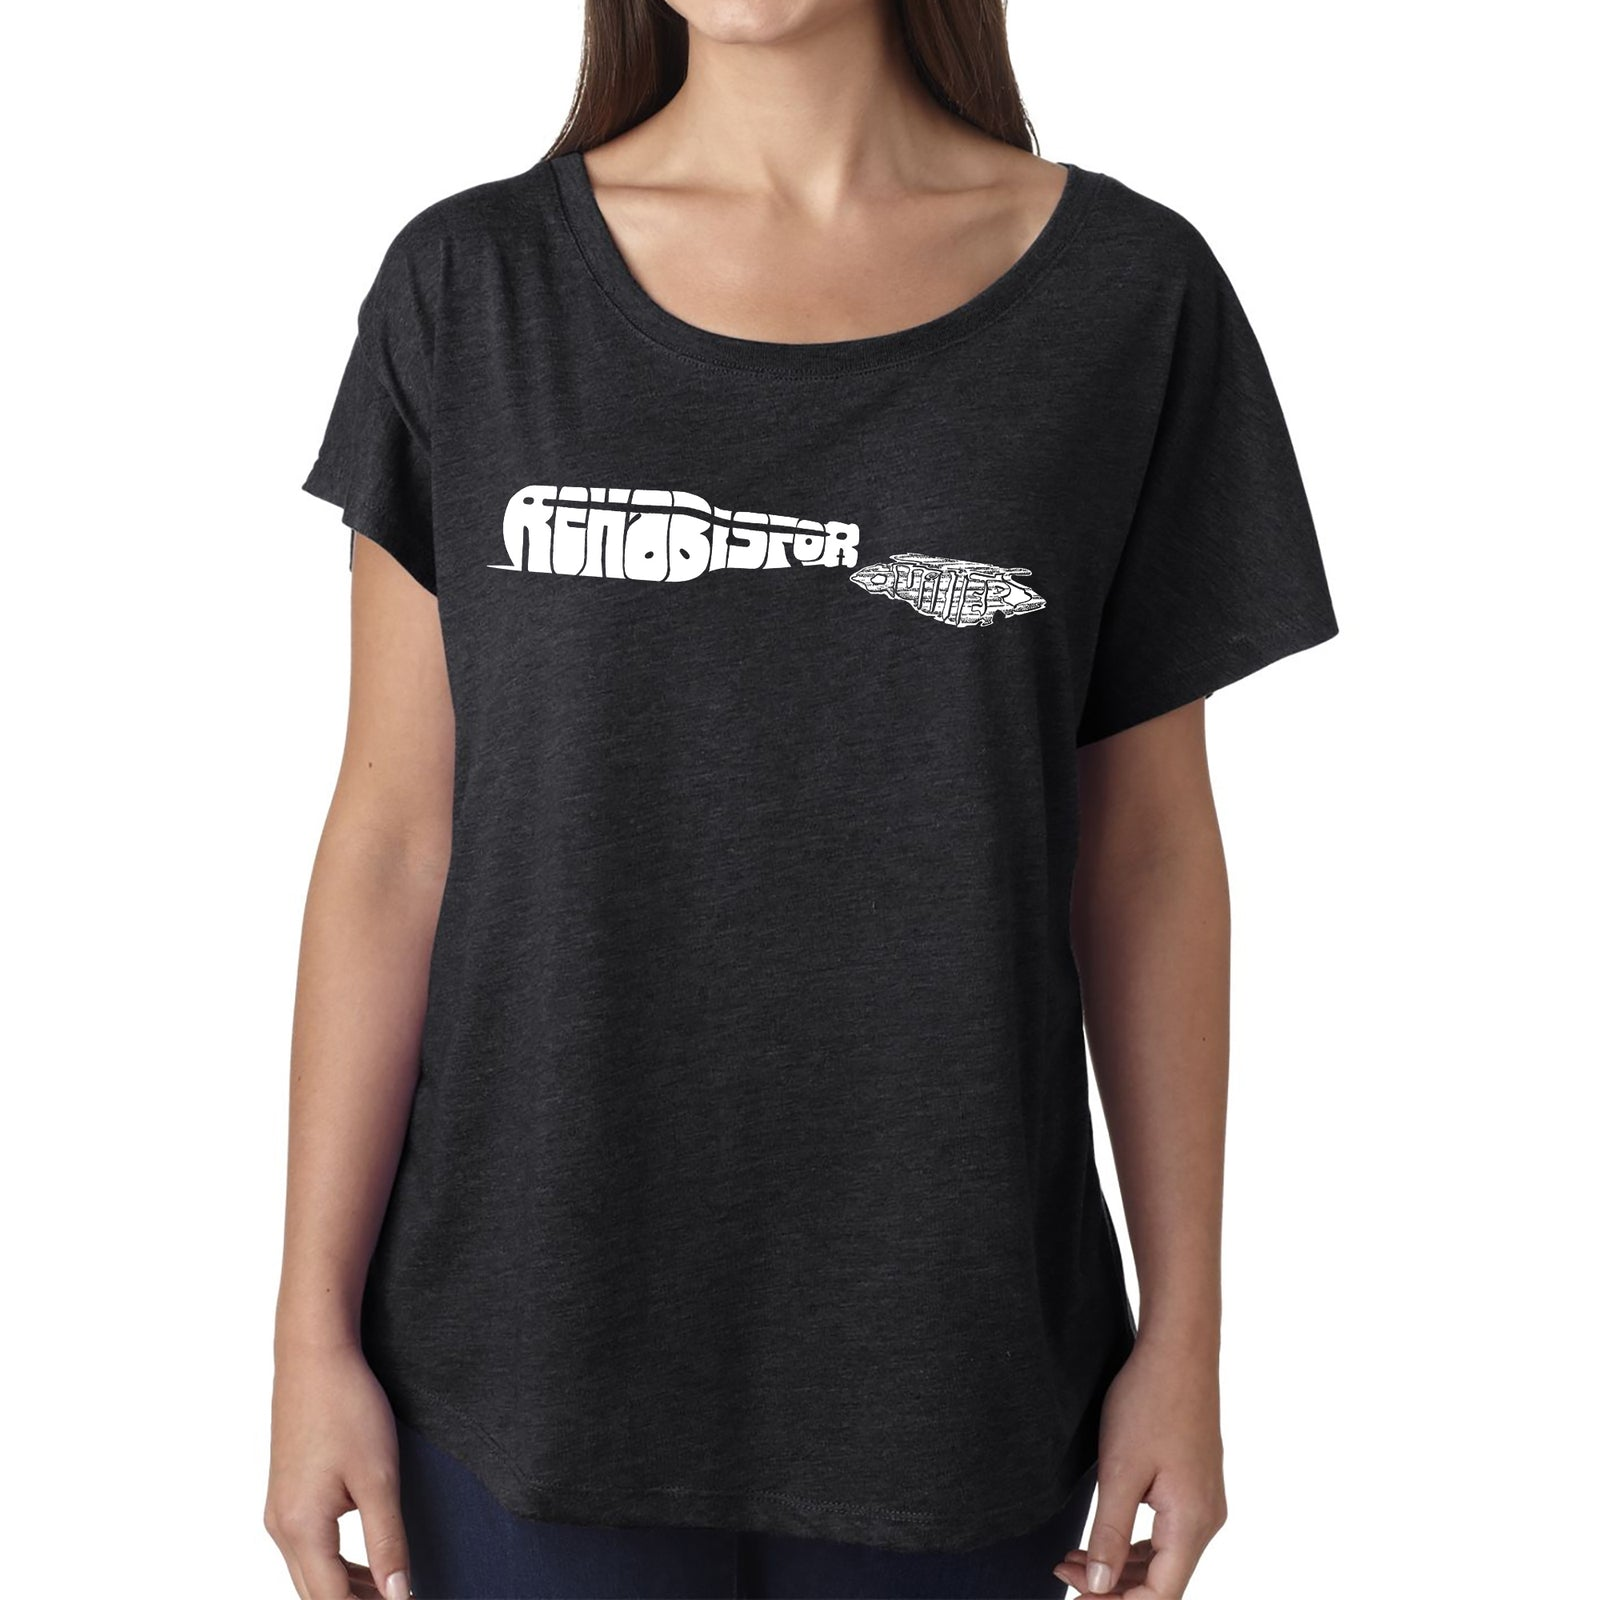 Women's Loose Fit Dolman Cut Word Art Shirt - REHAB IS FOR QUITTERS